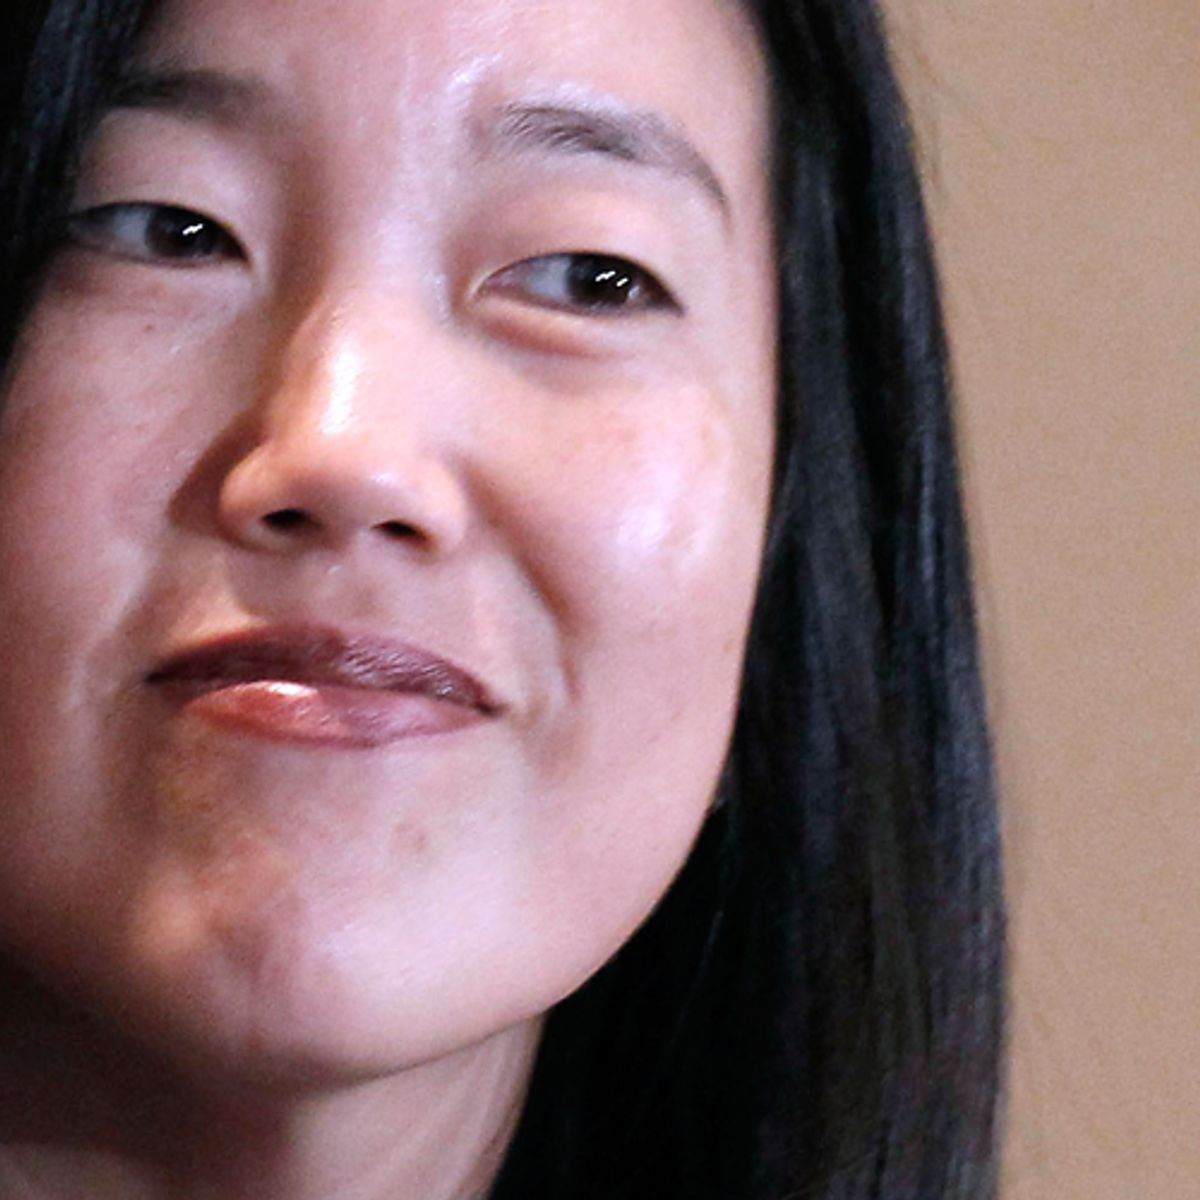 Charter-mania, high-stakes testing and teacher-bashing: Can Rhee's approach be stopped?